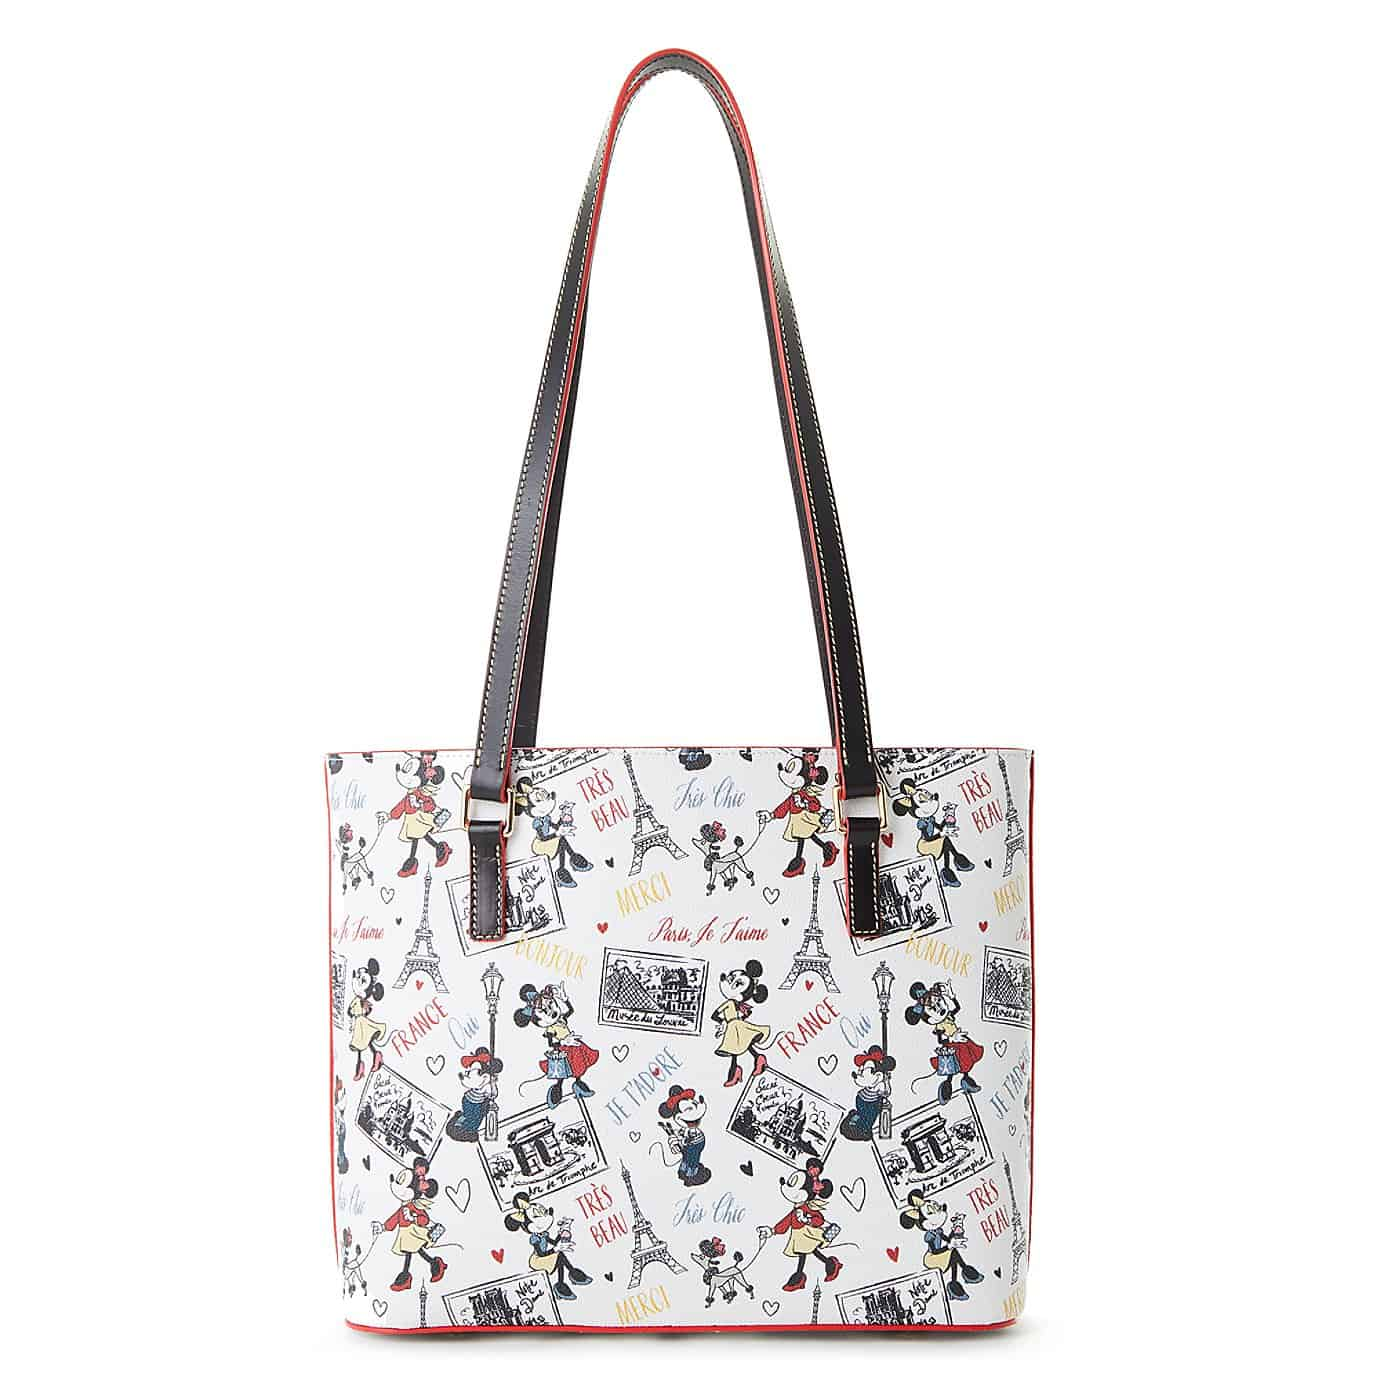 Disney Dooney chic minnie shopper tote back